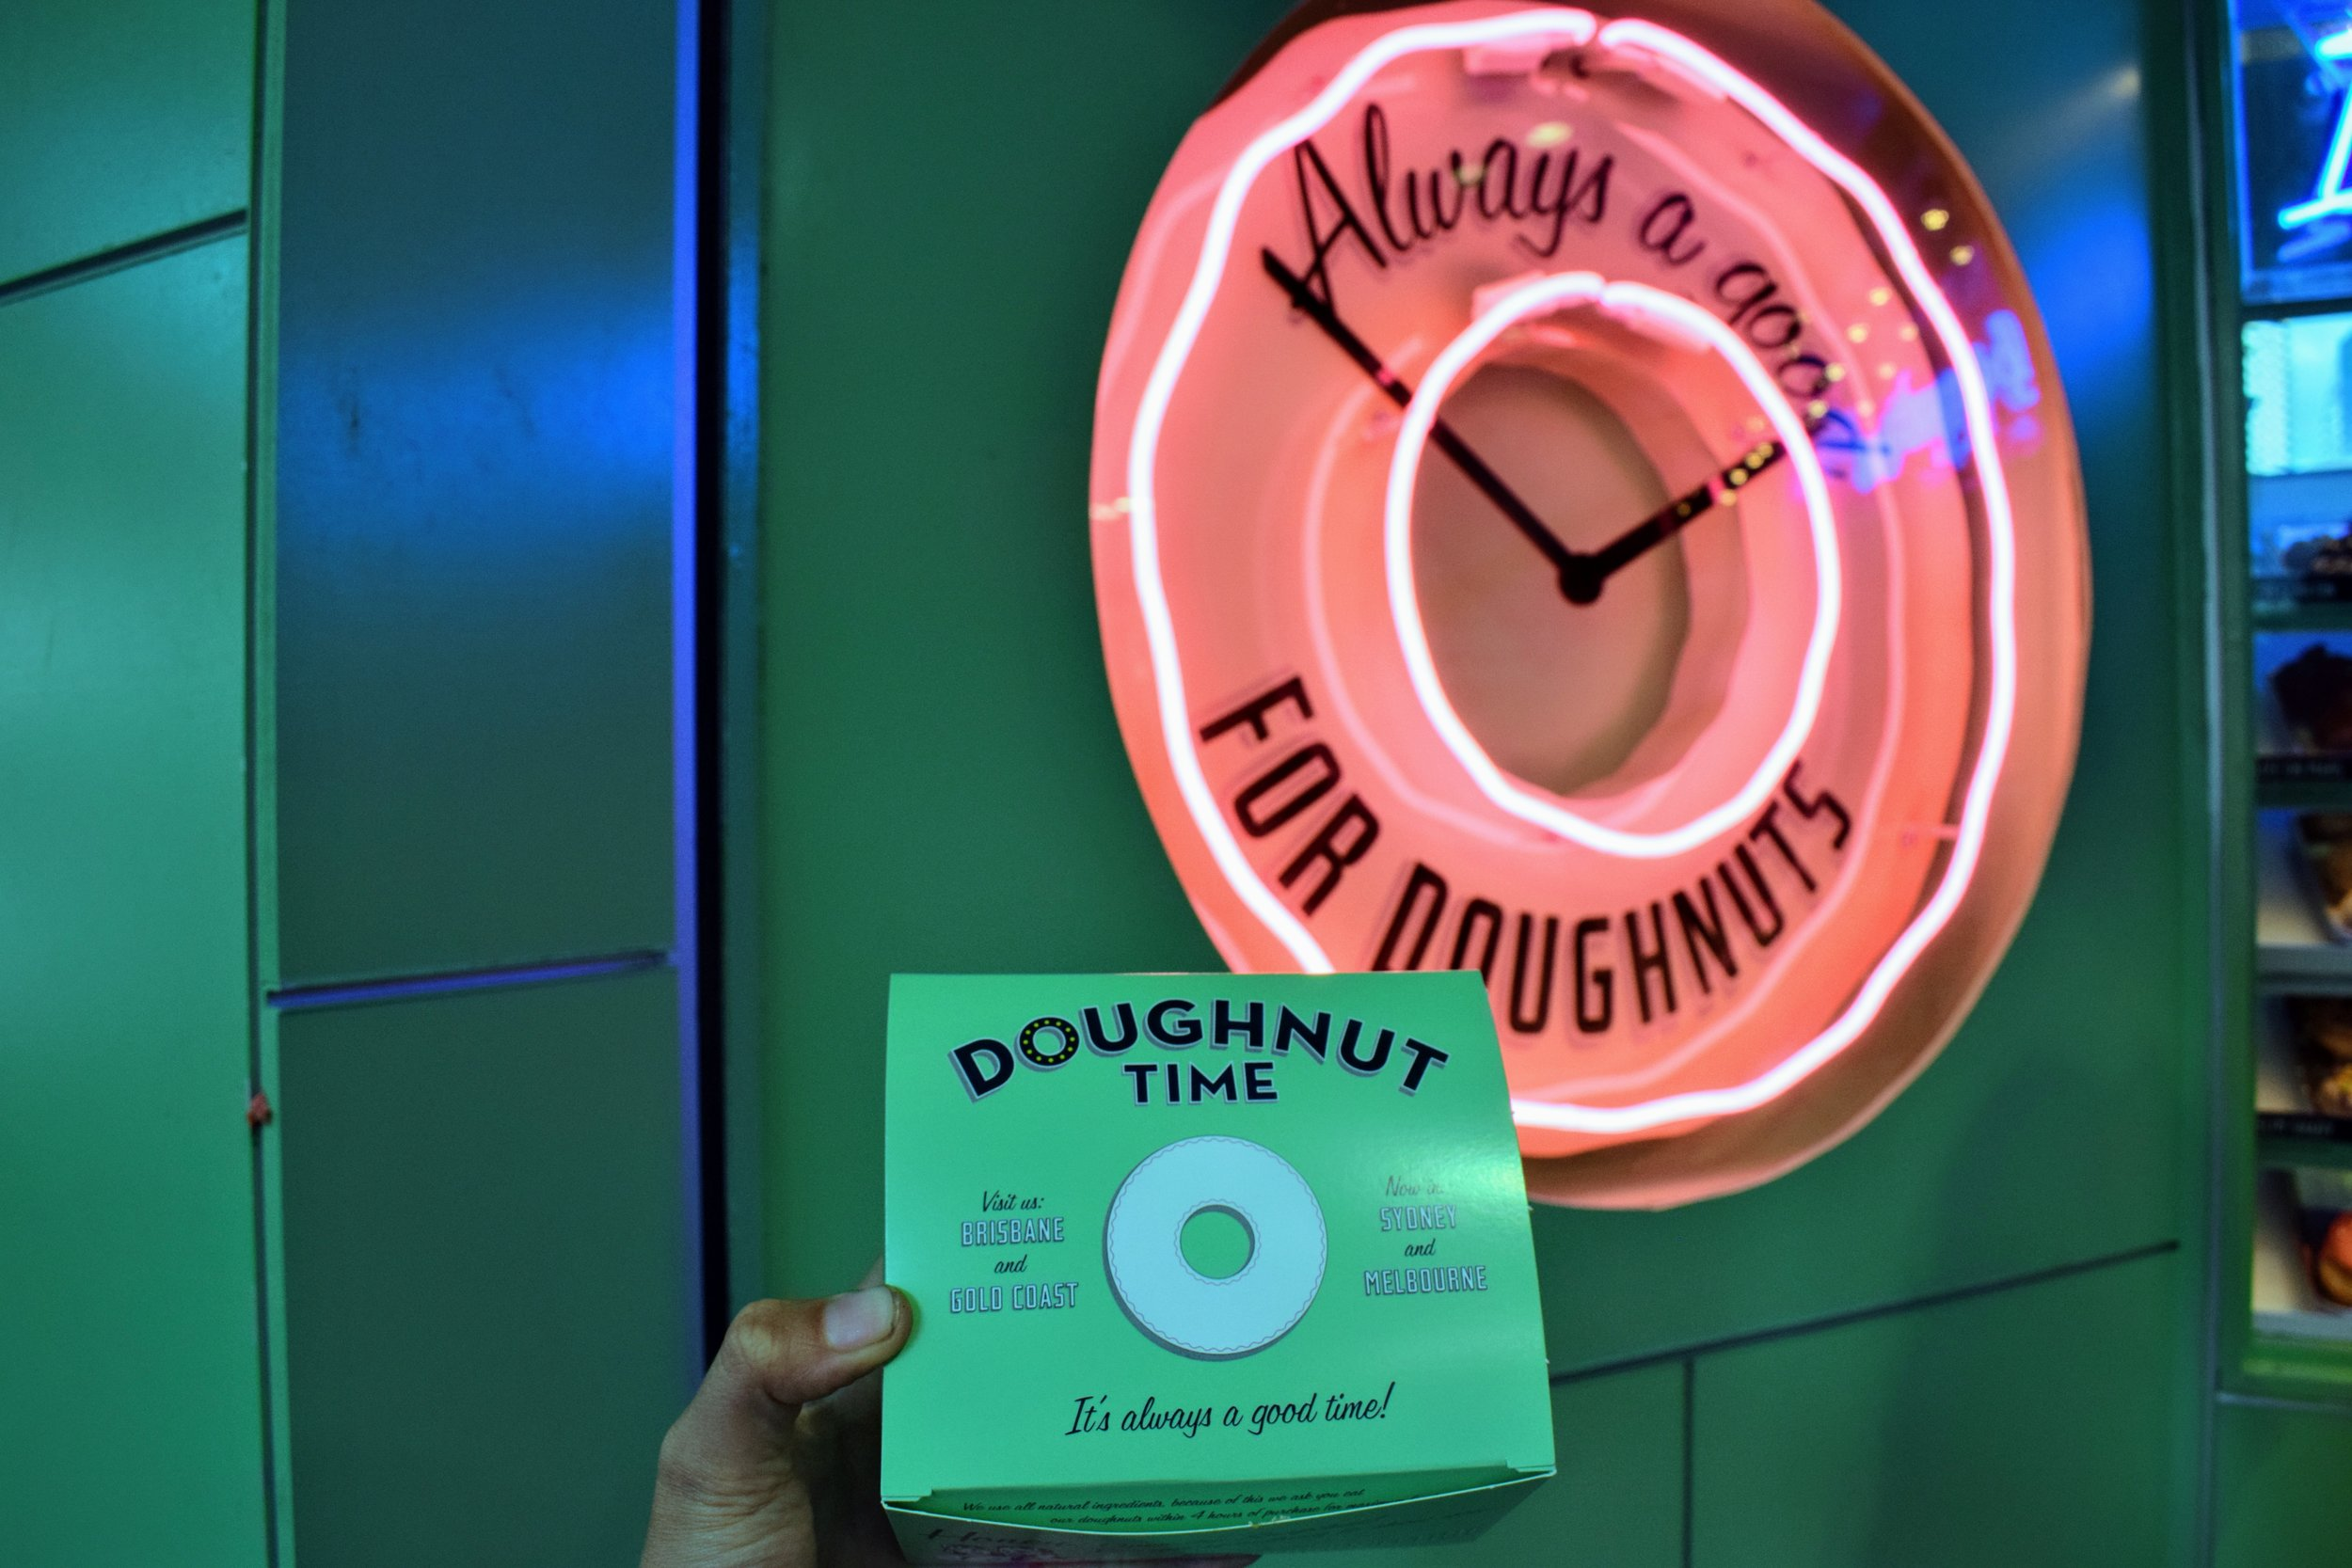 It really is always a good time for doughnuts.